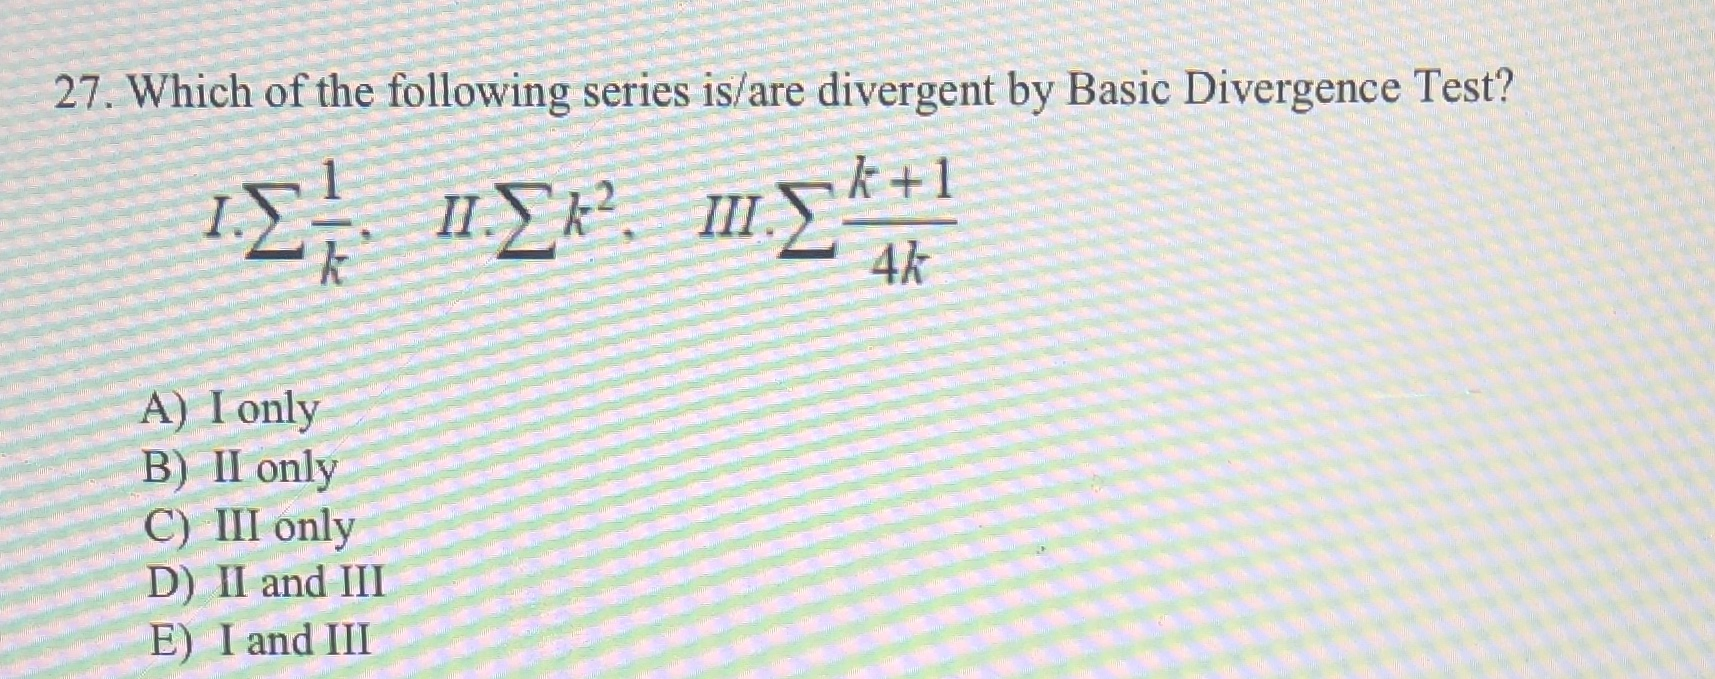 27. Which of the following series is/are divergent by Basic Divergence Test? ΙΣ ΙΣ Σ k +1 II 4k A) I only B) II only C) III only D) II and III E) I and III